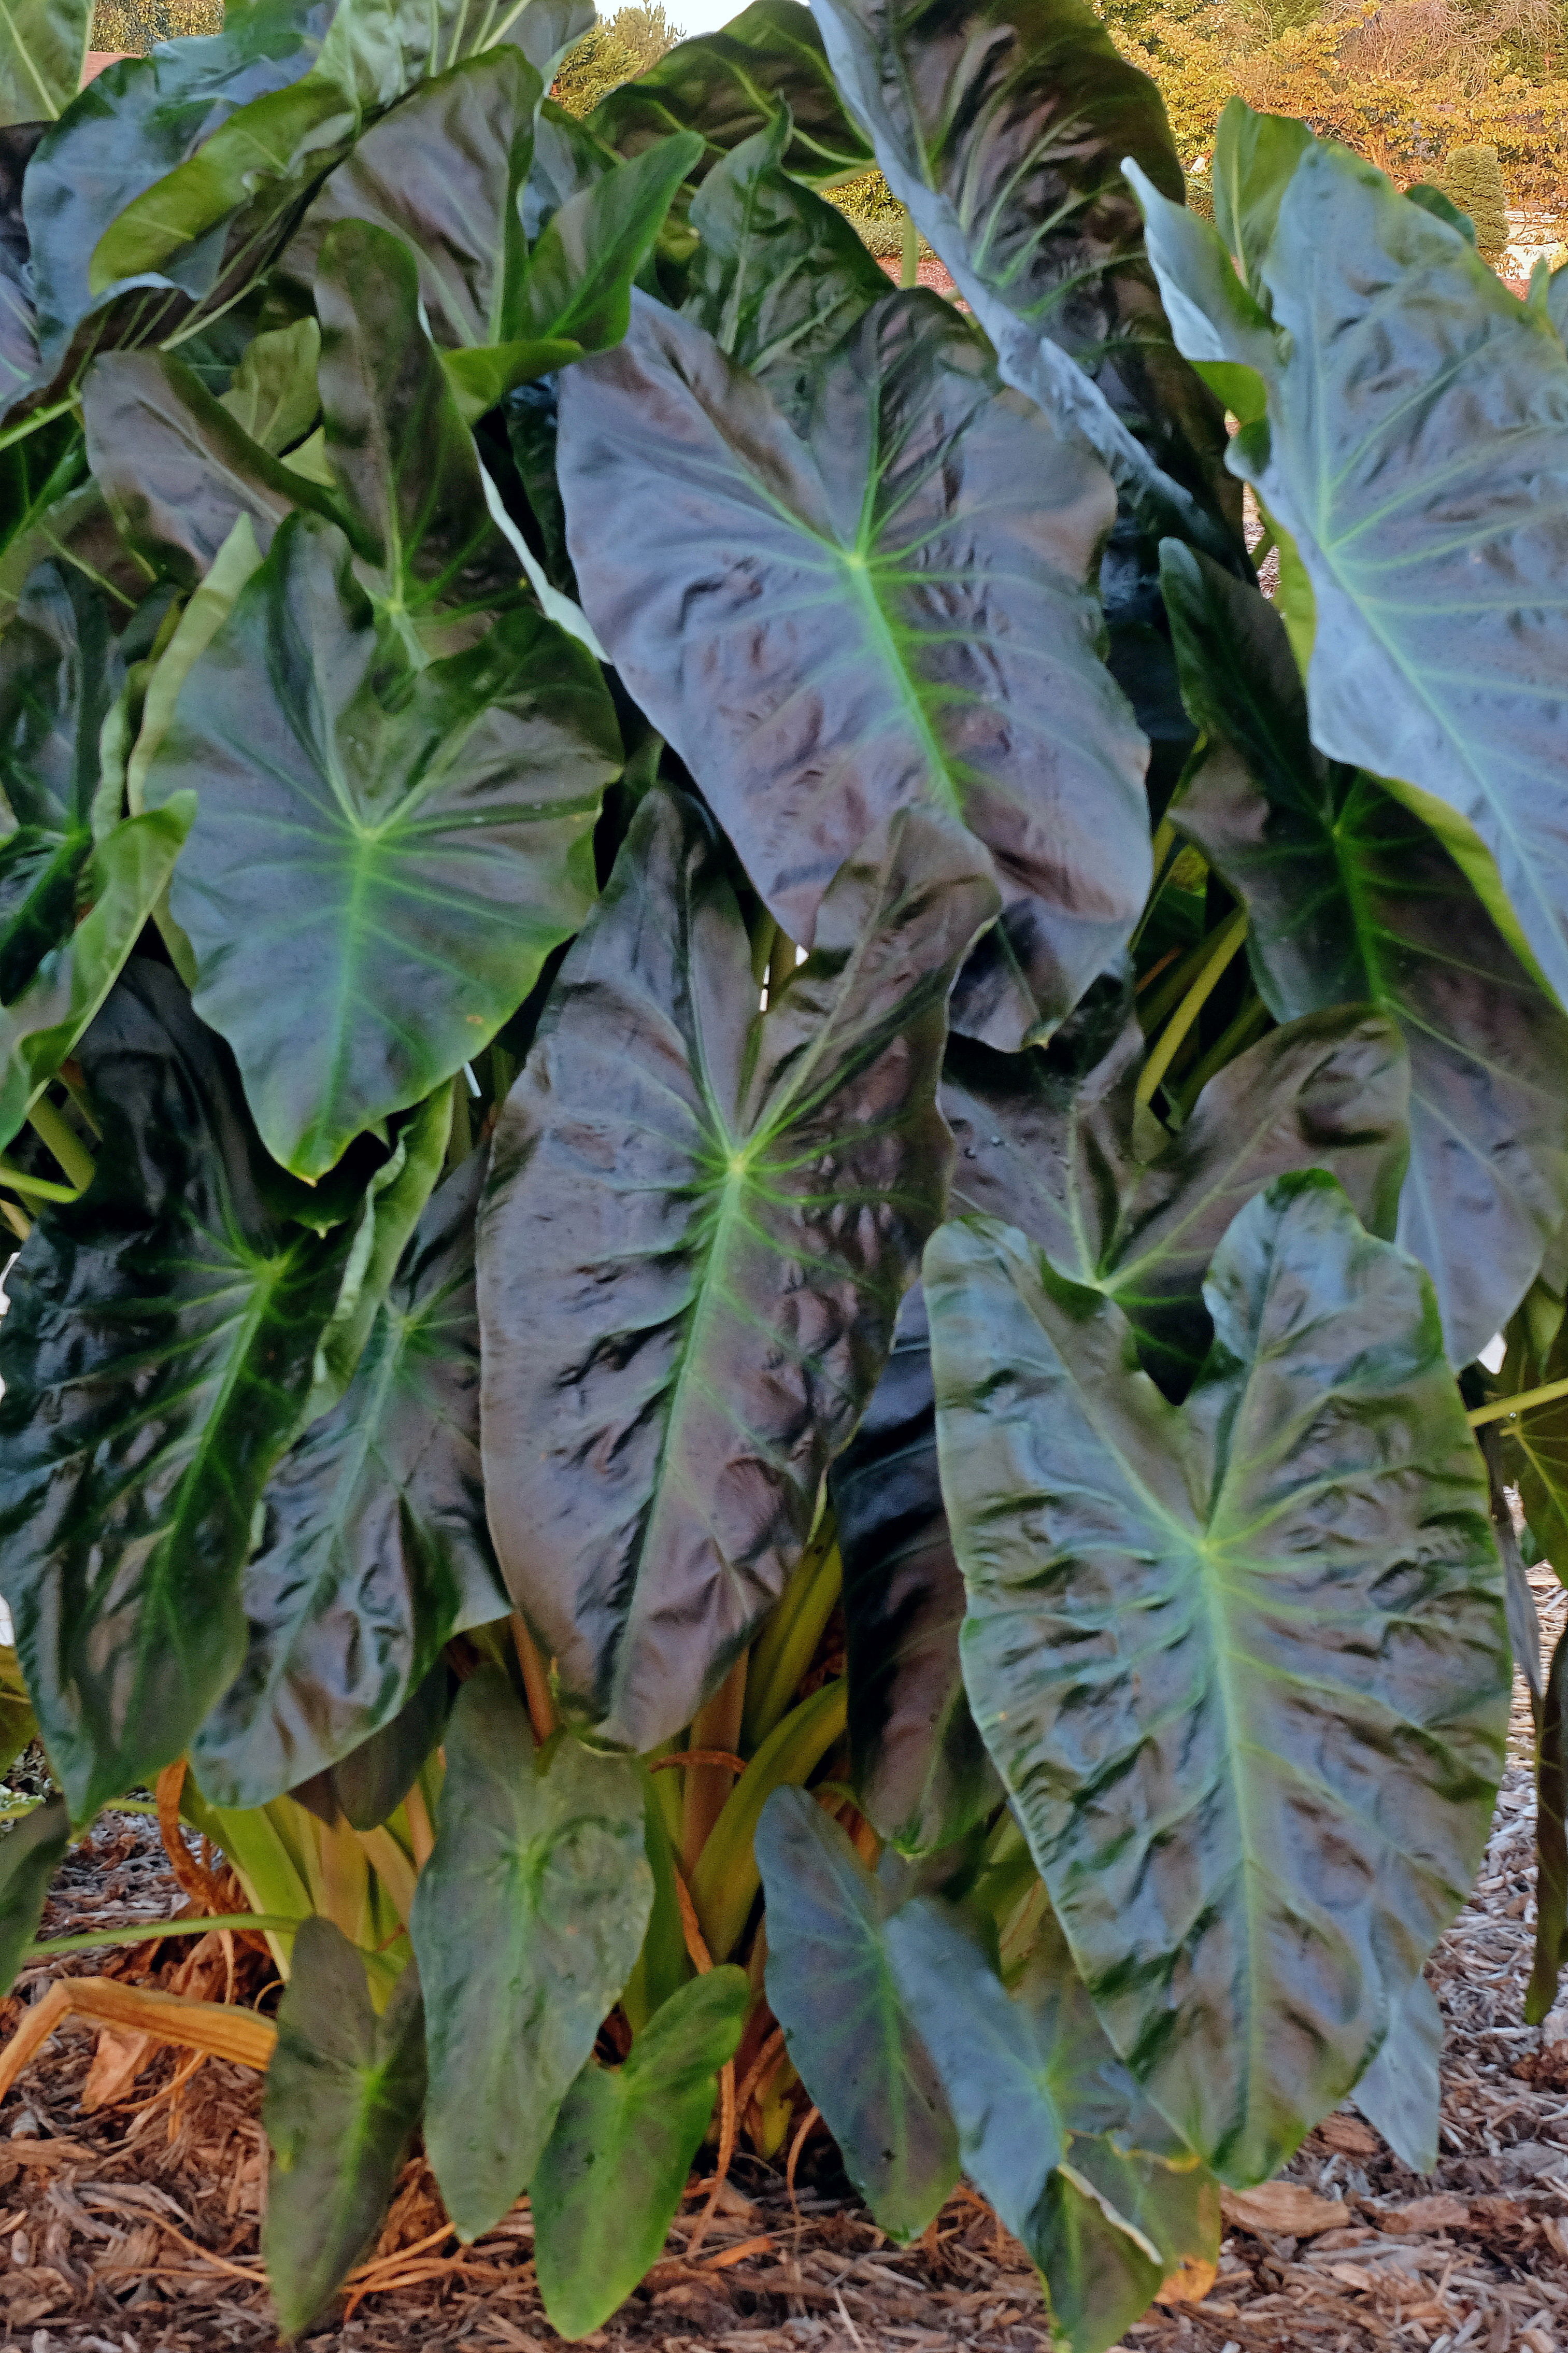 Colocasia 'Aloha' PP 29,692 @ JLBG - a 2017 John Cho introduction using C. 'Coal Miner' as a parent.